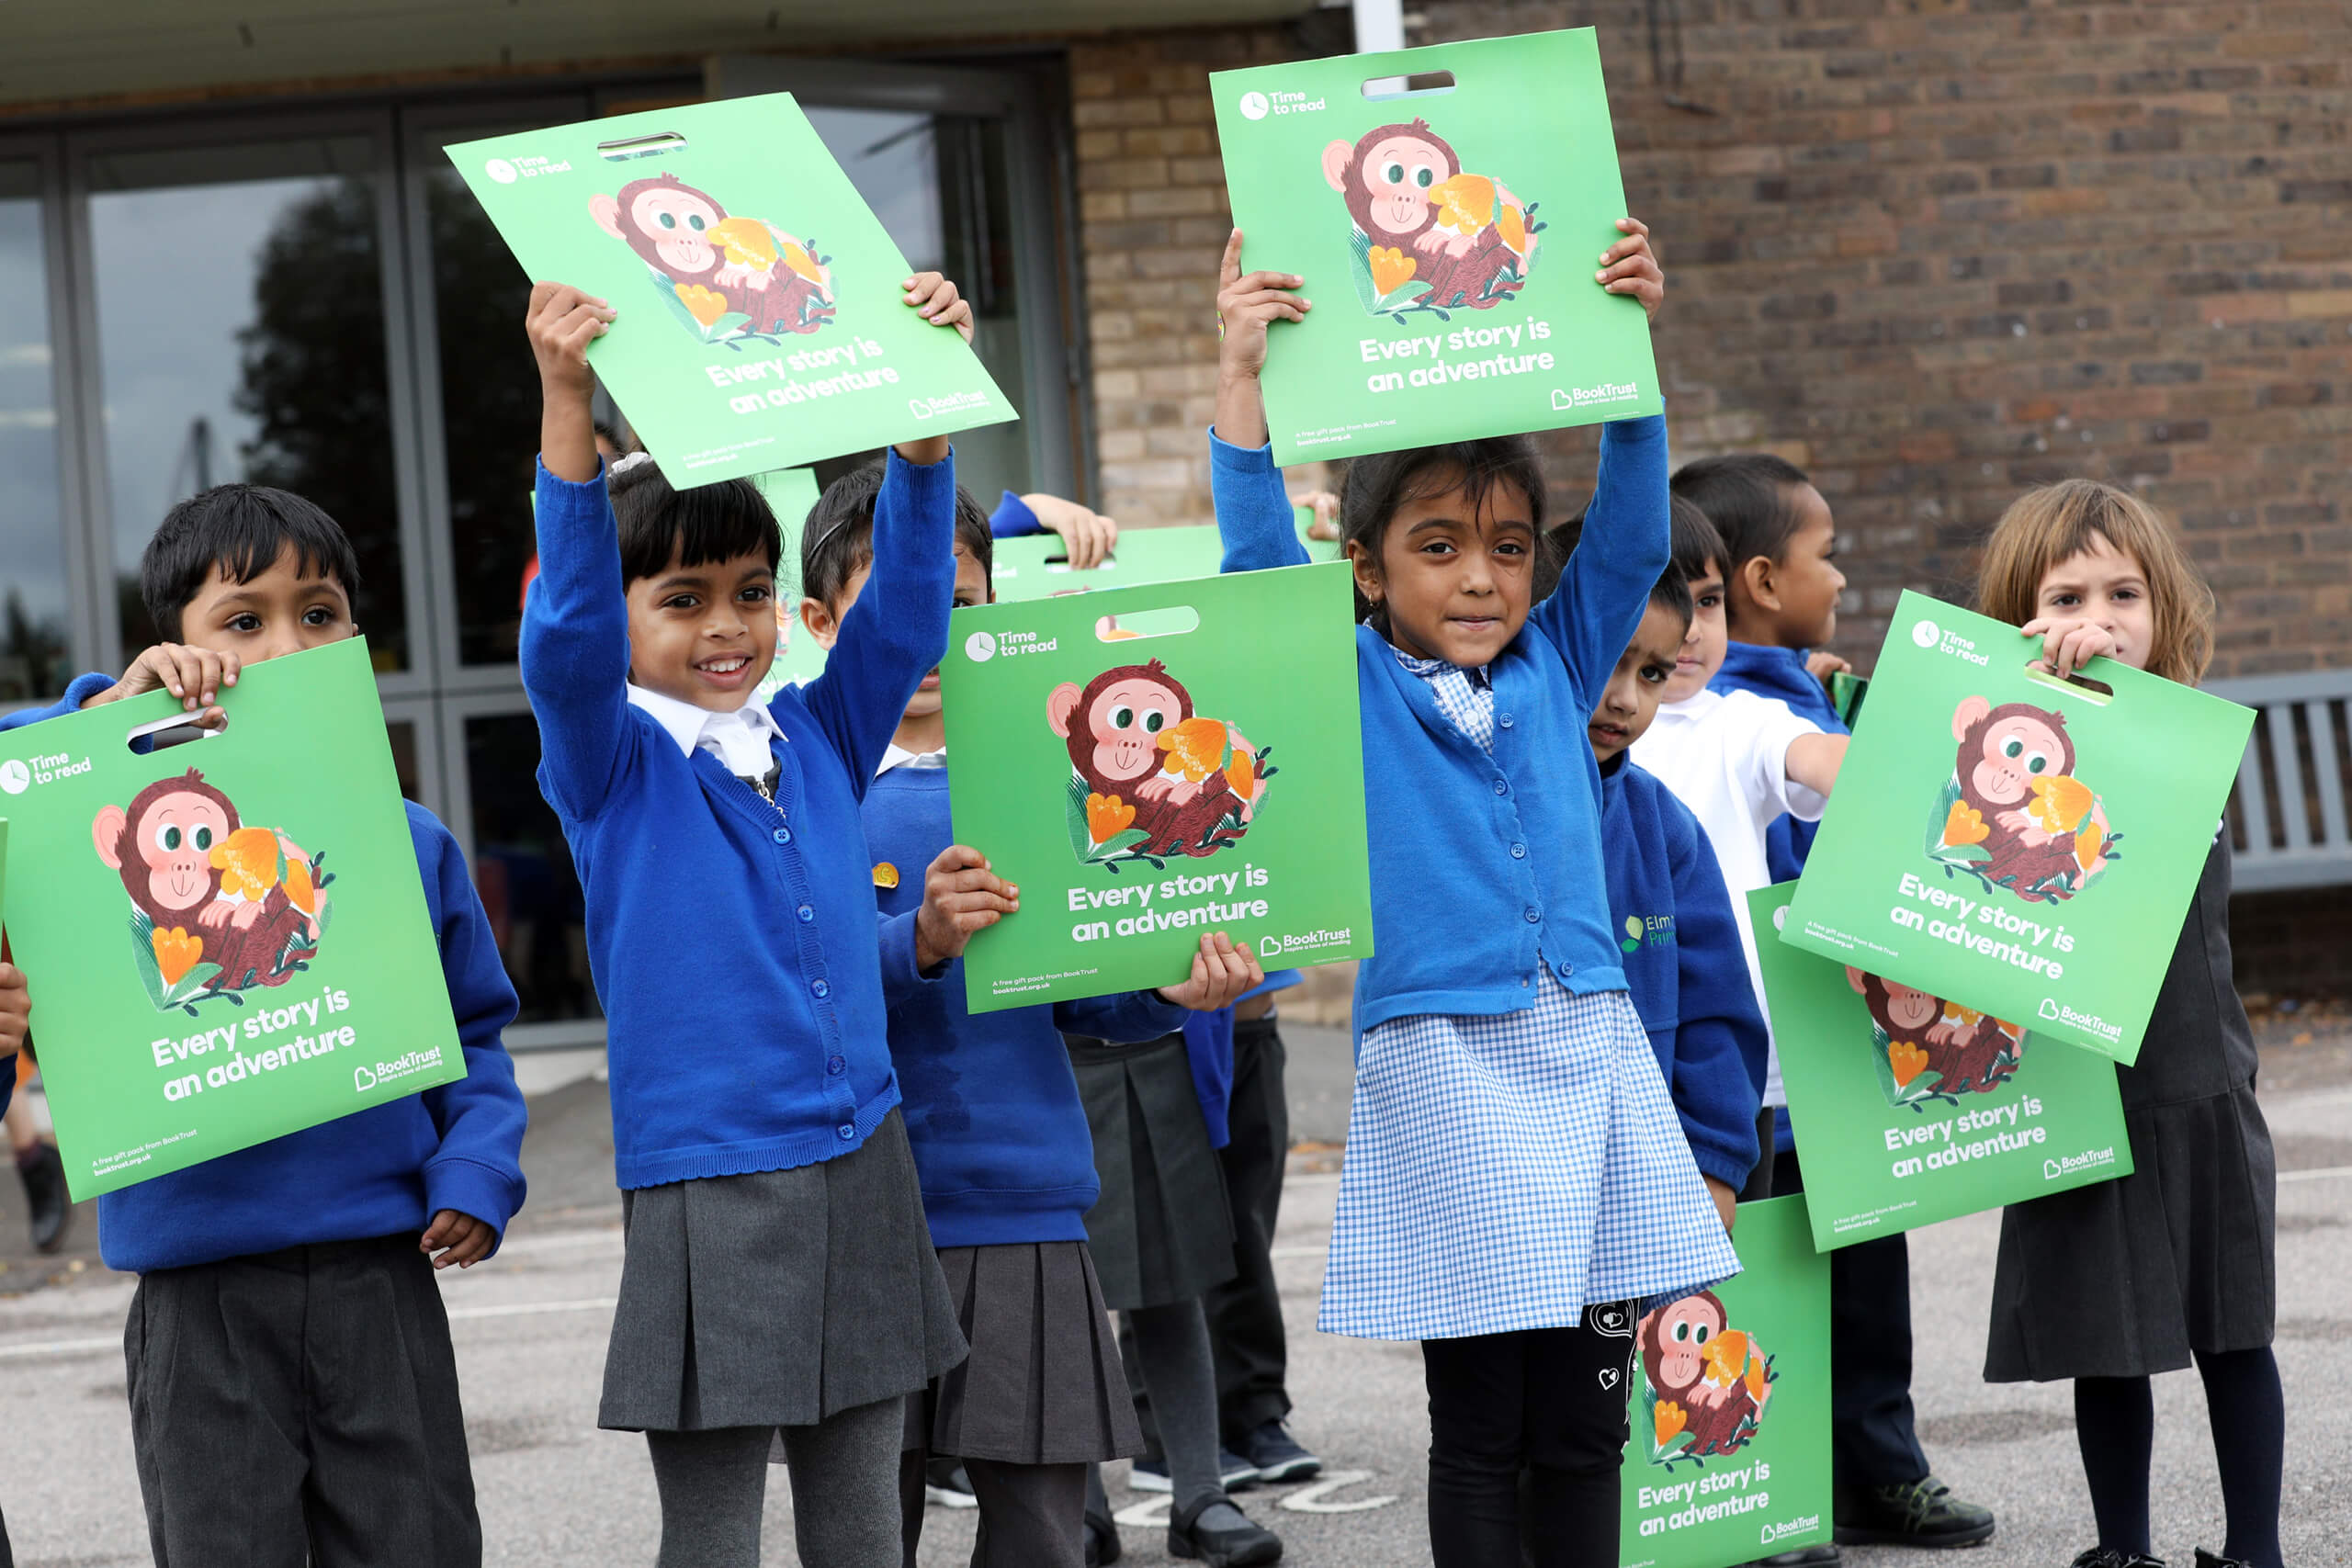 Children holding up Little Monkey by Marta Altes at Elmhurst primary school in Newham